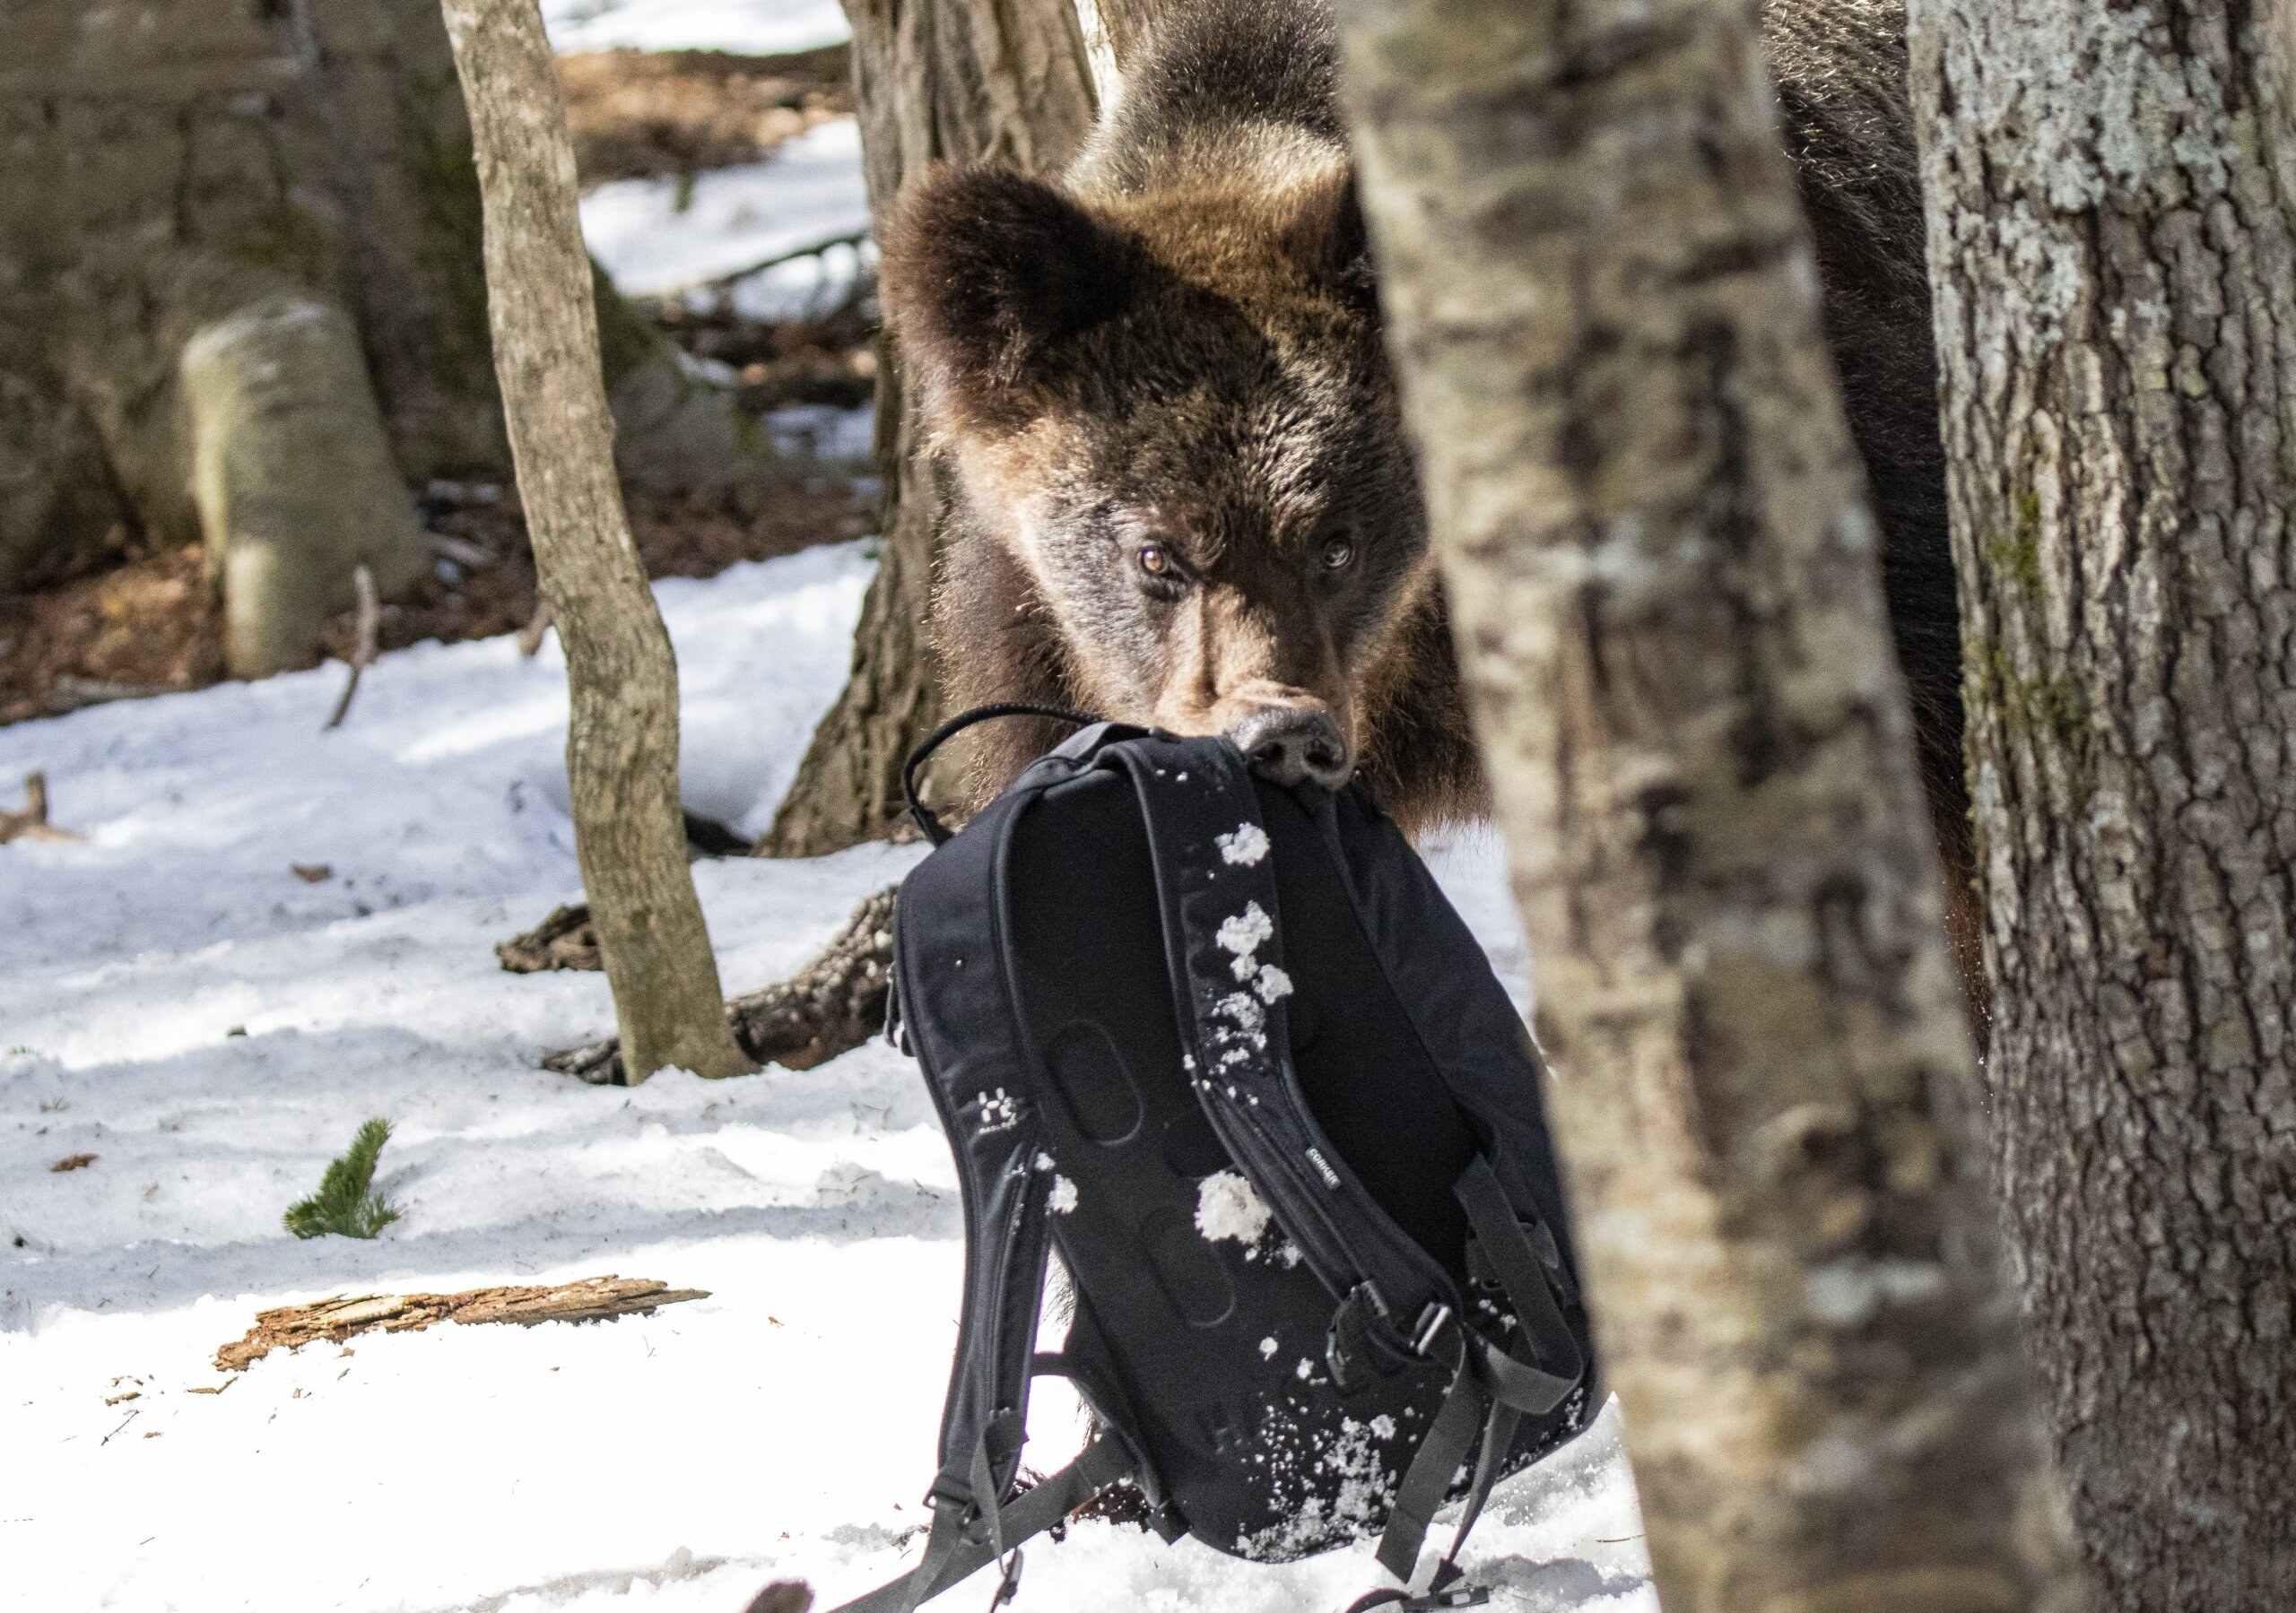 The moment when Kishimoto's backpack, placed off to the side and containing his camera equipment, was grabbed by the bear. ⒸKishimoto Hideo